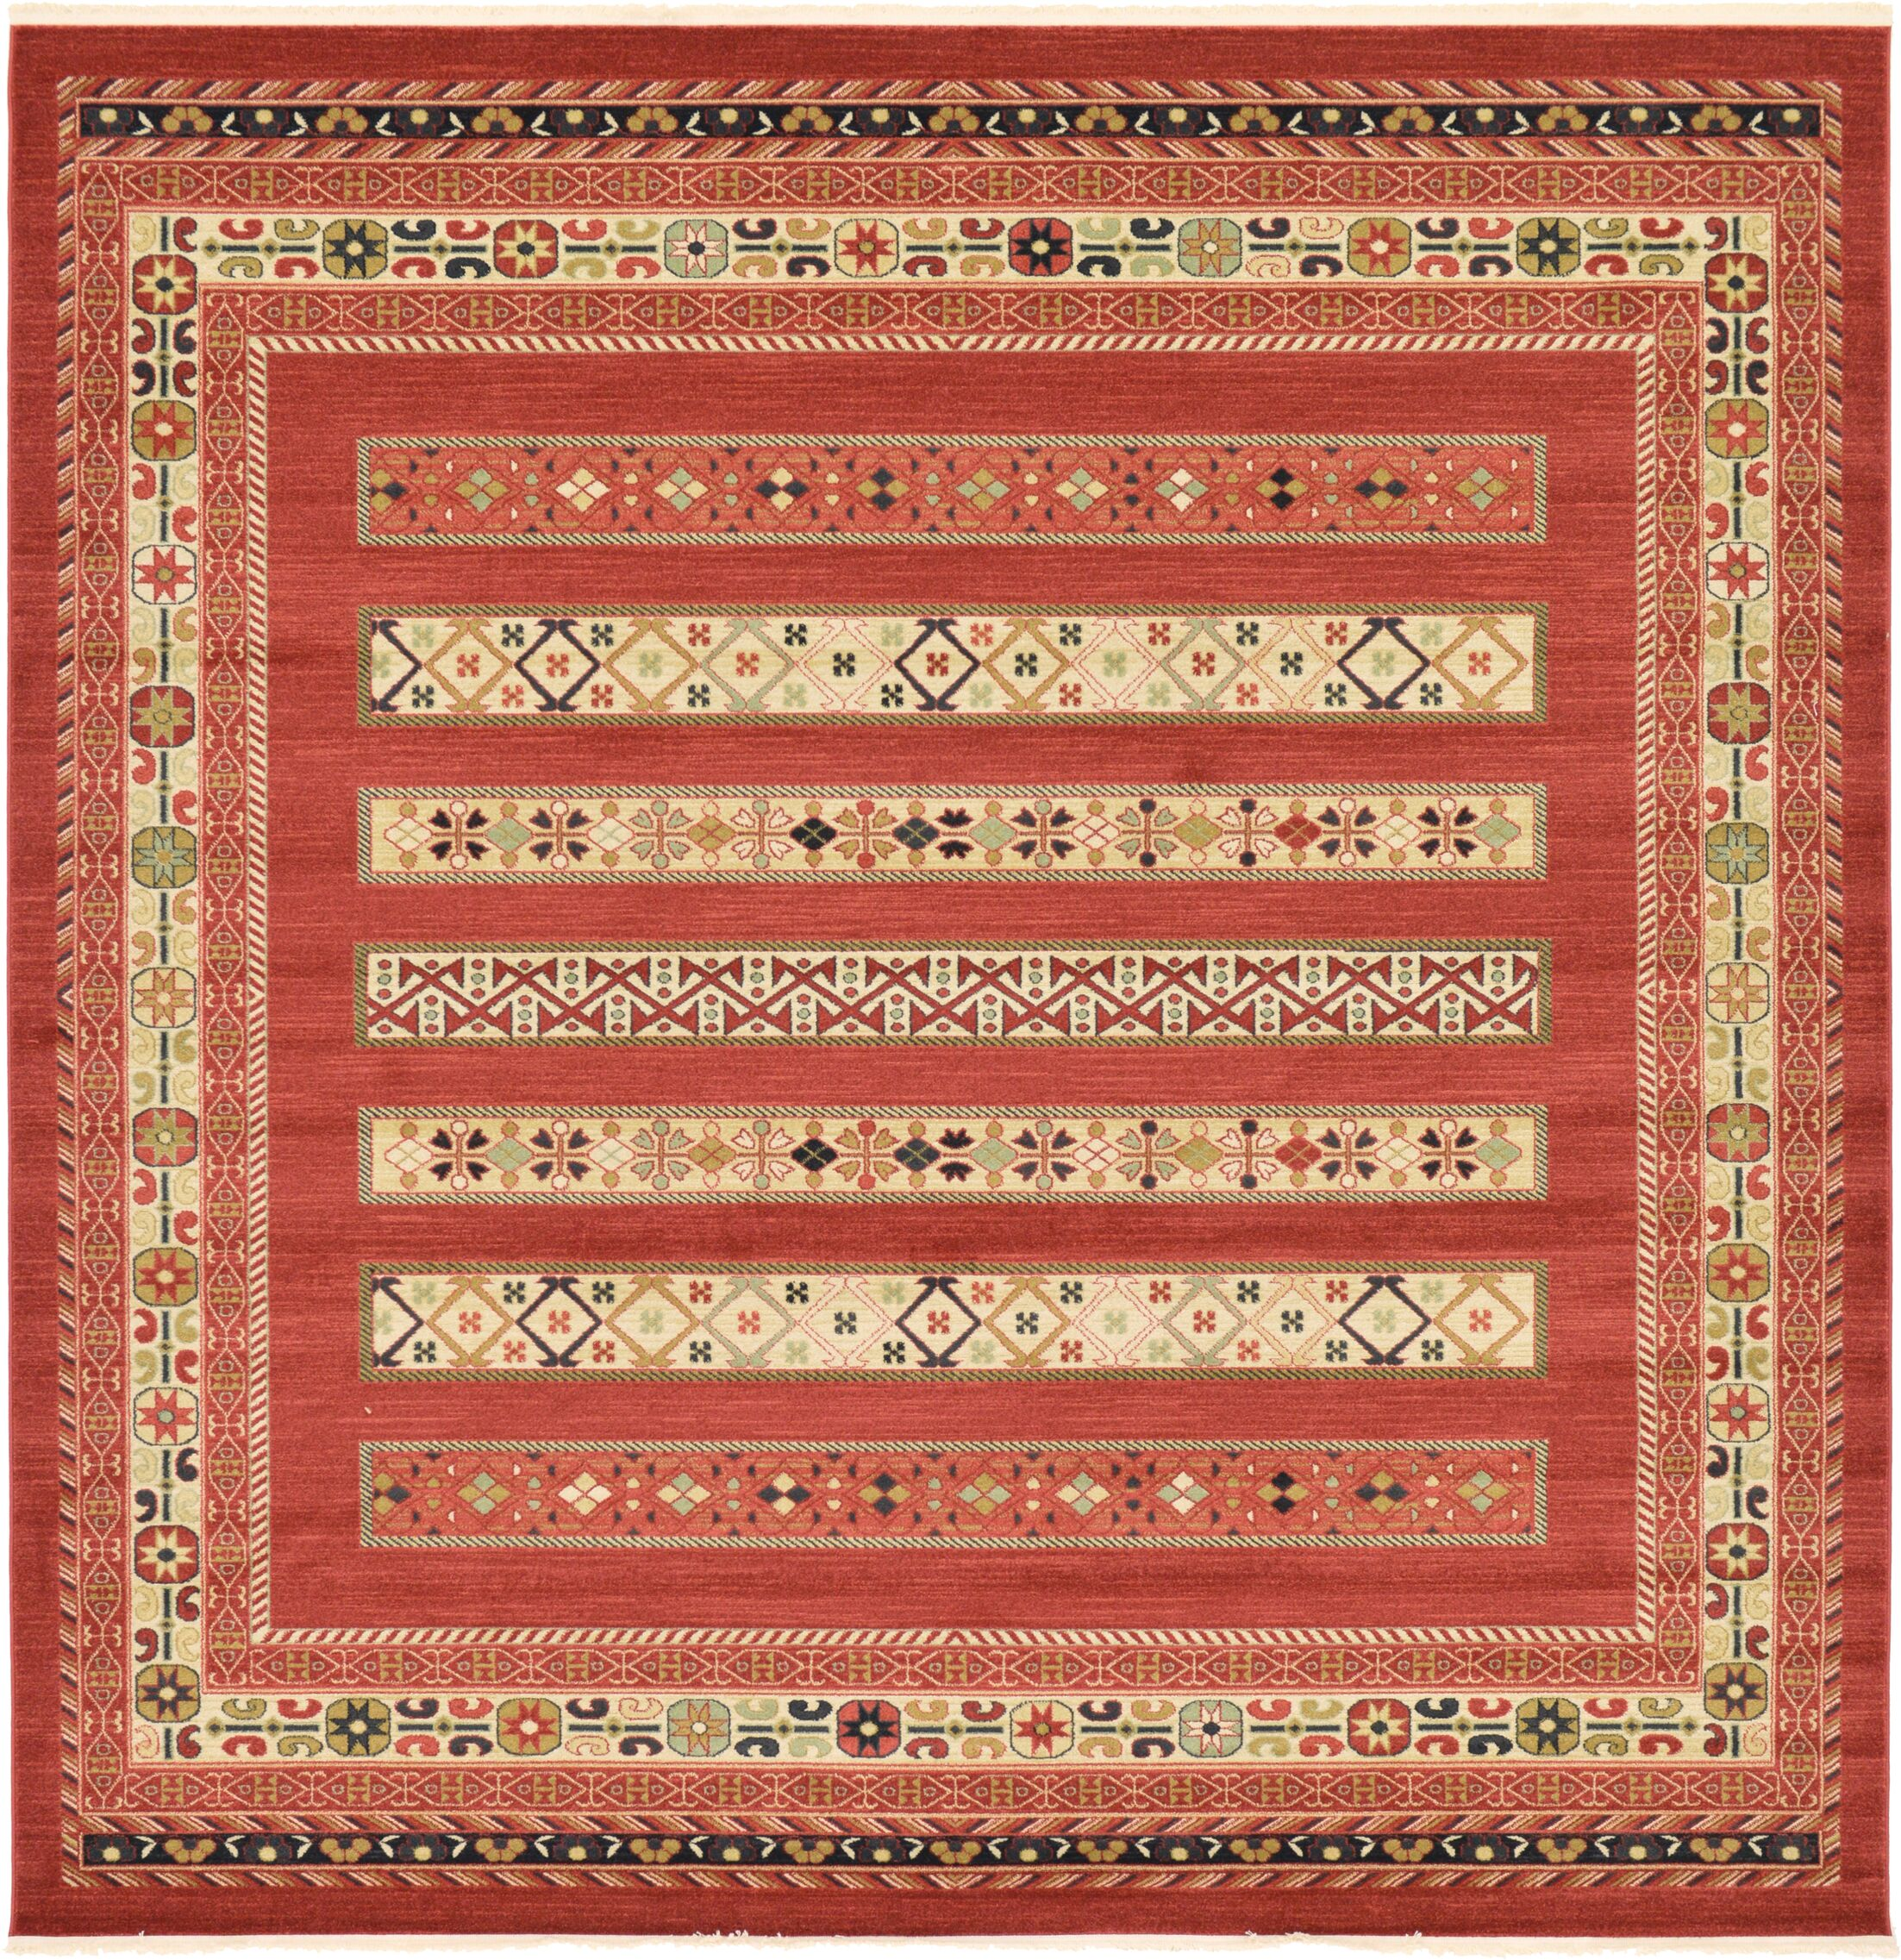 Foret Noire Rust Red Area Rug Rug Size: Square 10'